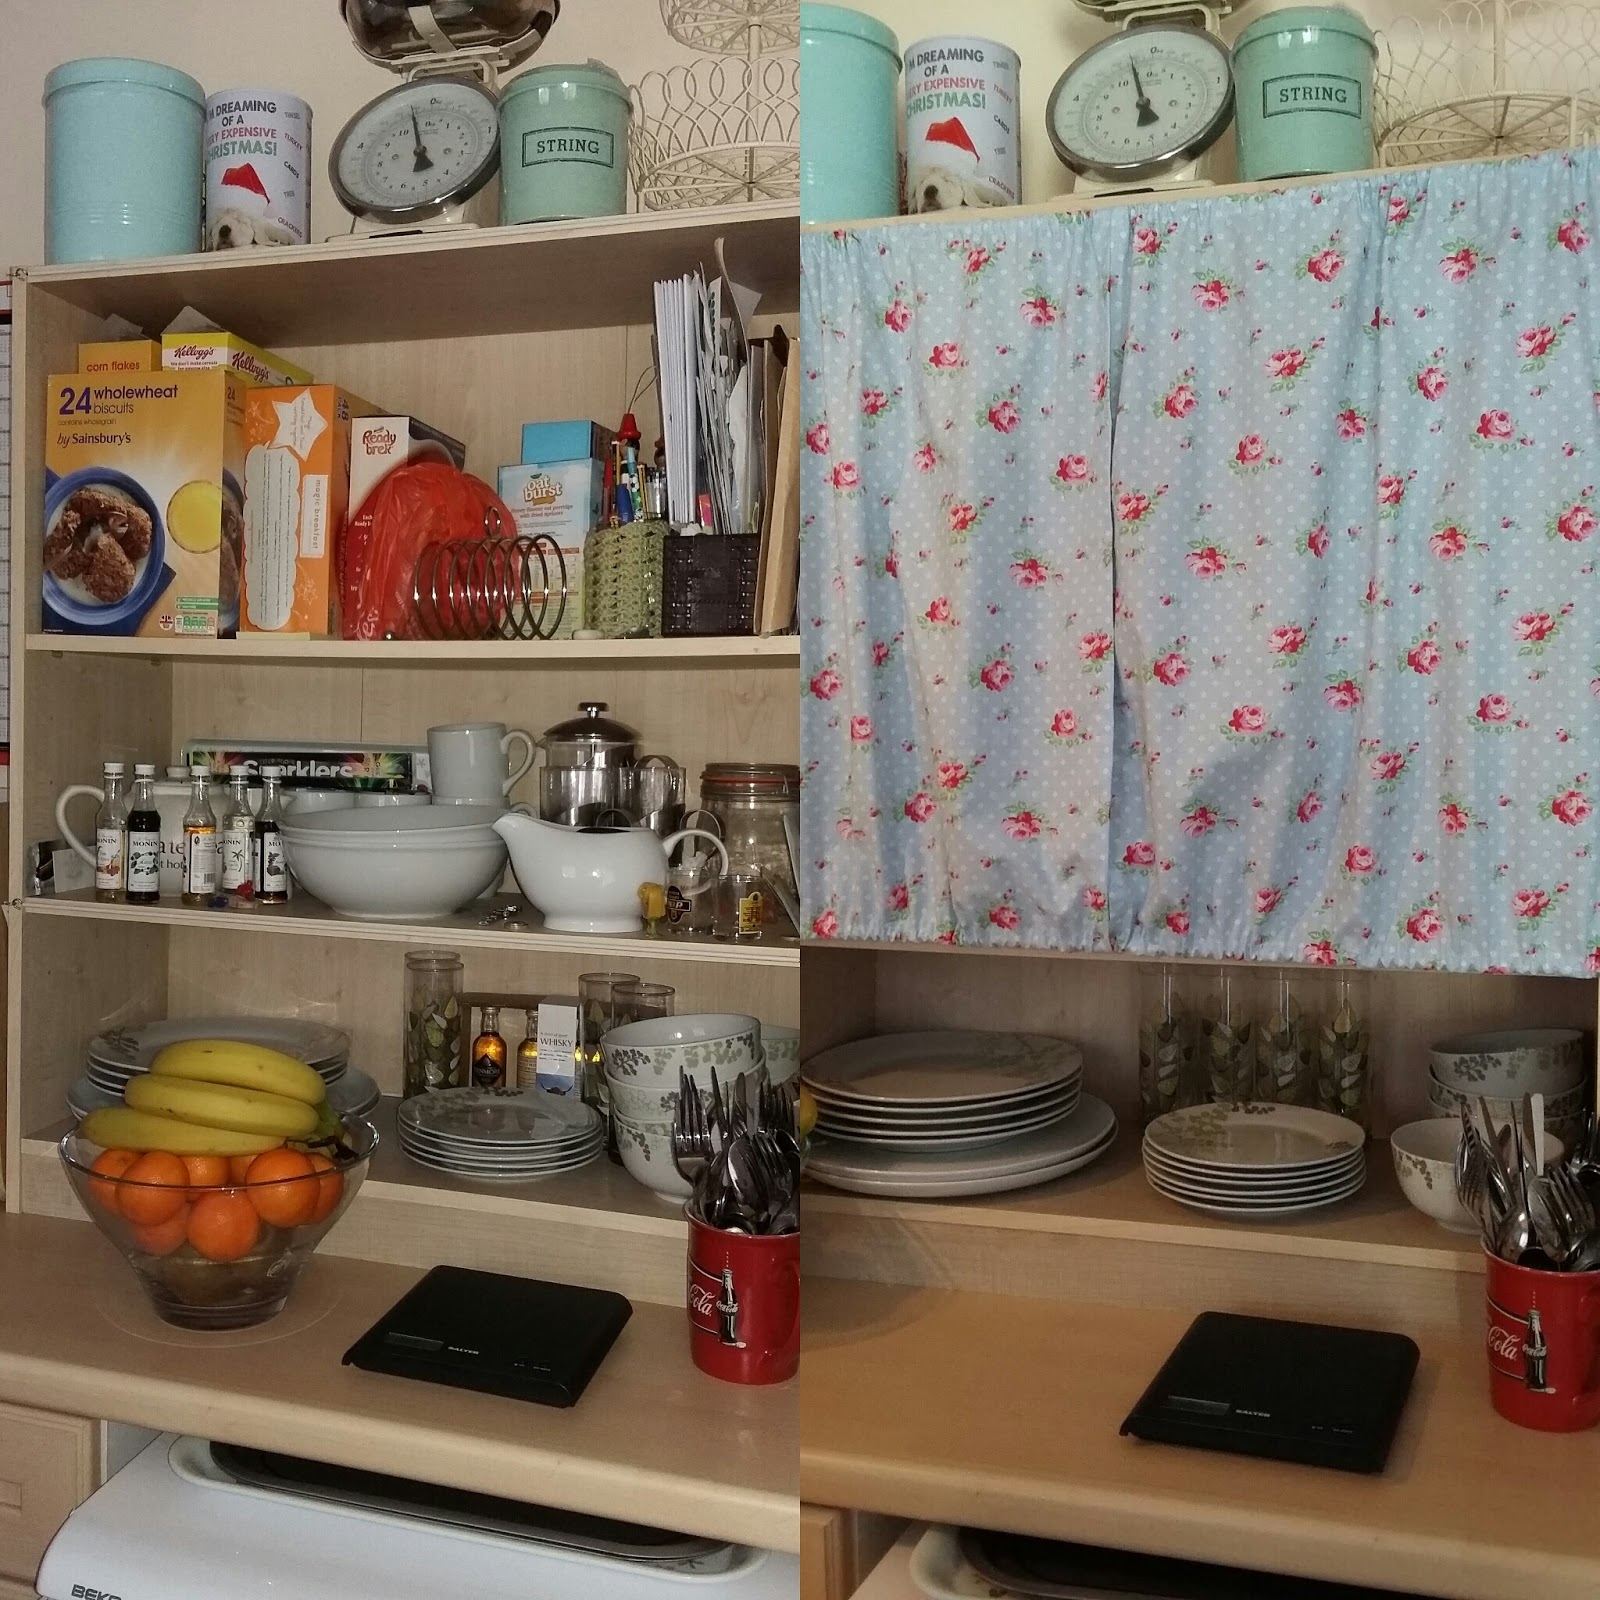 Messy Kitchen Before And After: Clair, Crochet & Coffee